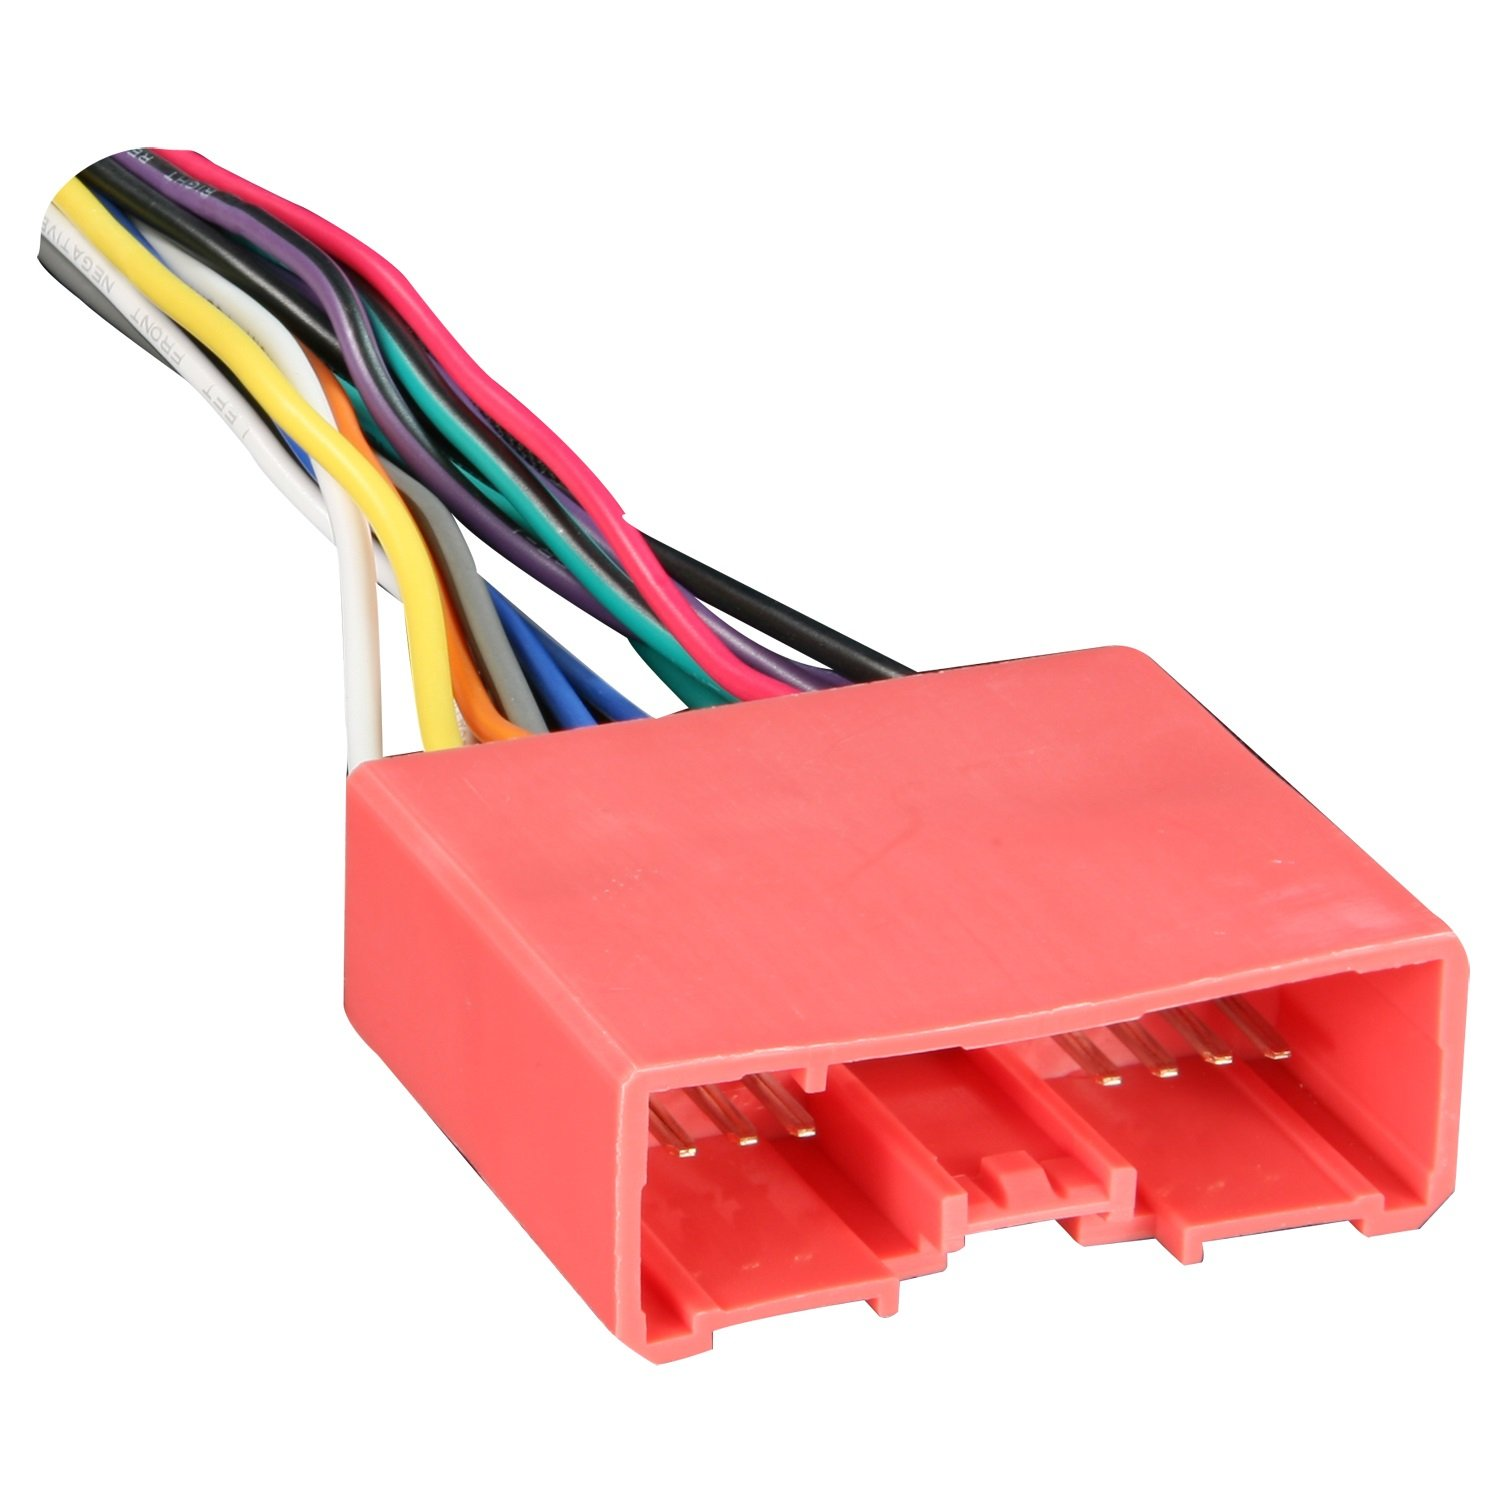 Amazon.com: Metra Electronics 70-7903 Wiring Harness for 2001-Up ...